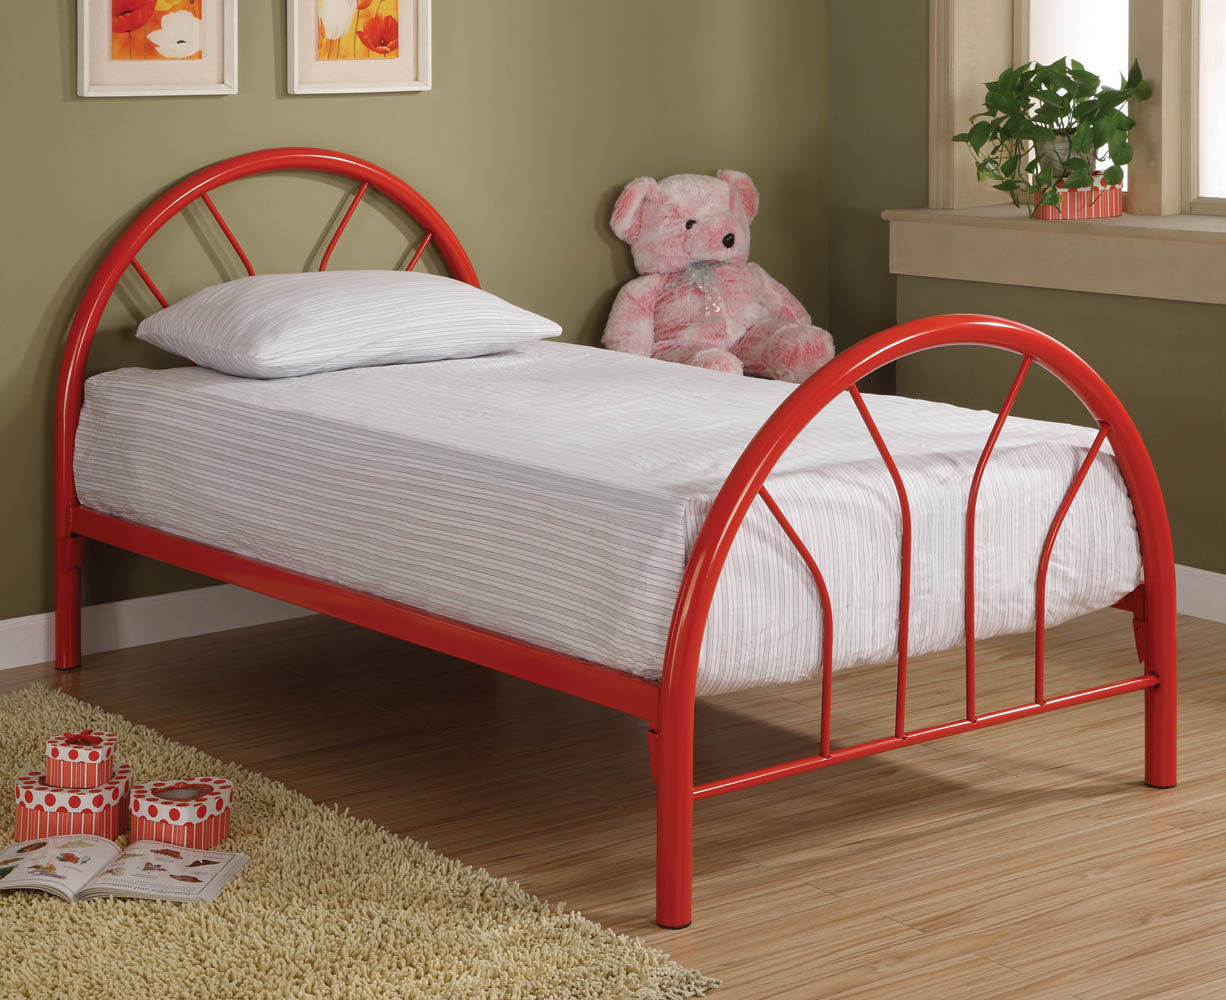 Red metal twin bed frame for Twin size childrens bed frames